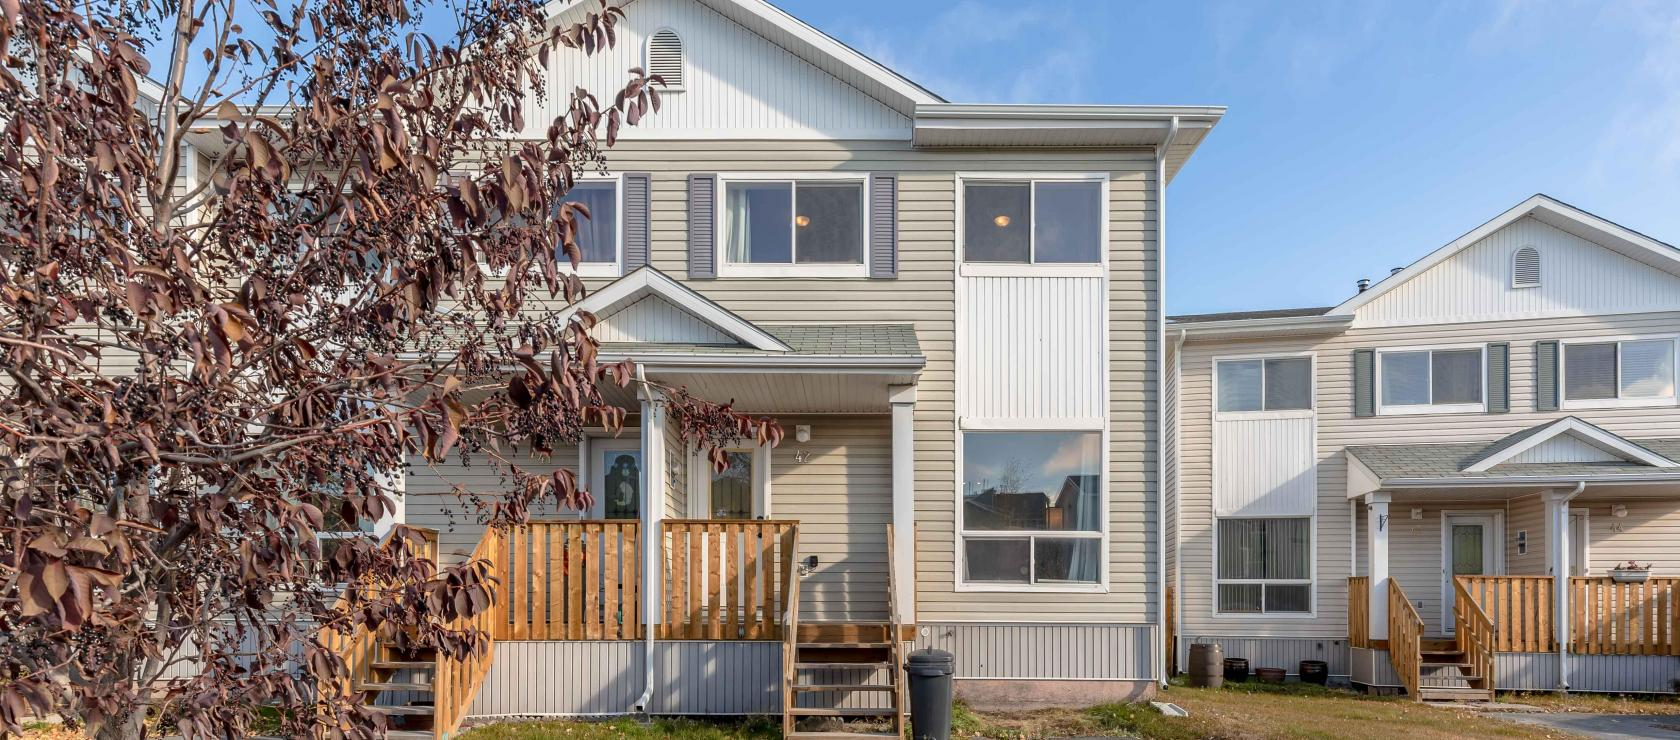 42 - 705 Williams Ave, Frame Lake, Yellowknife 2